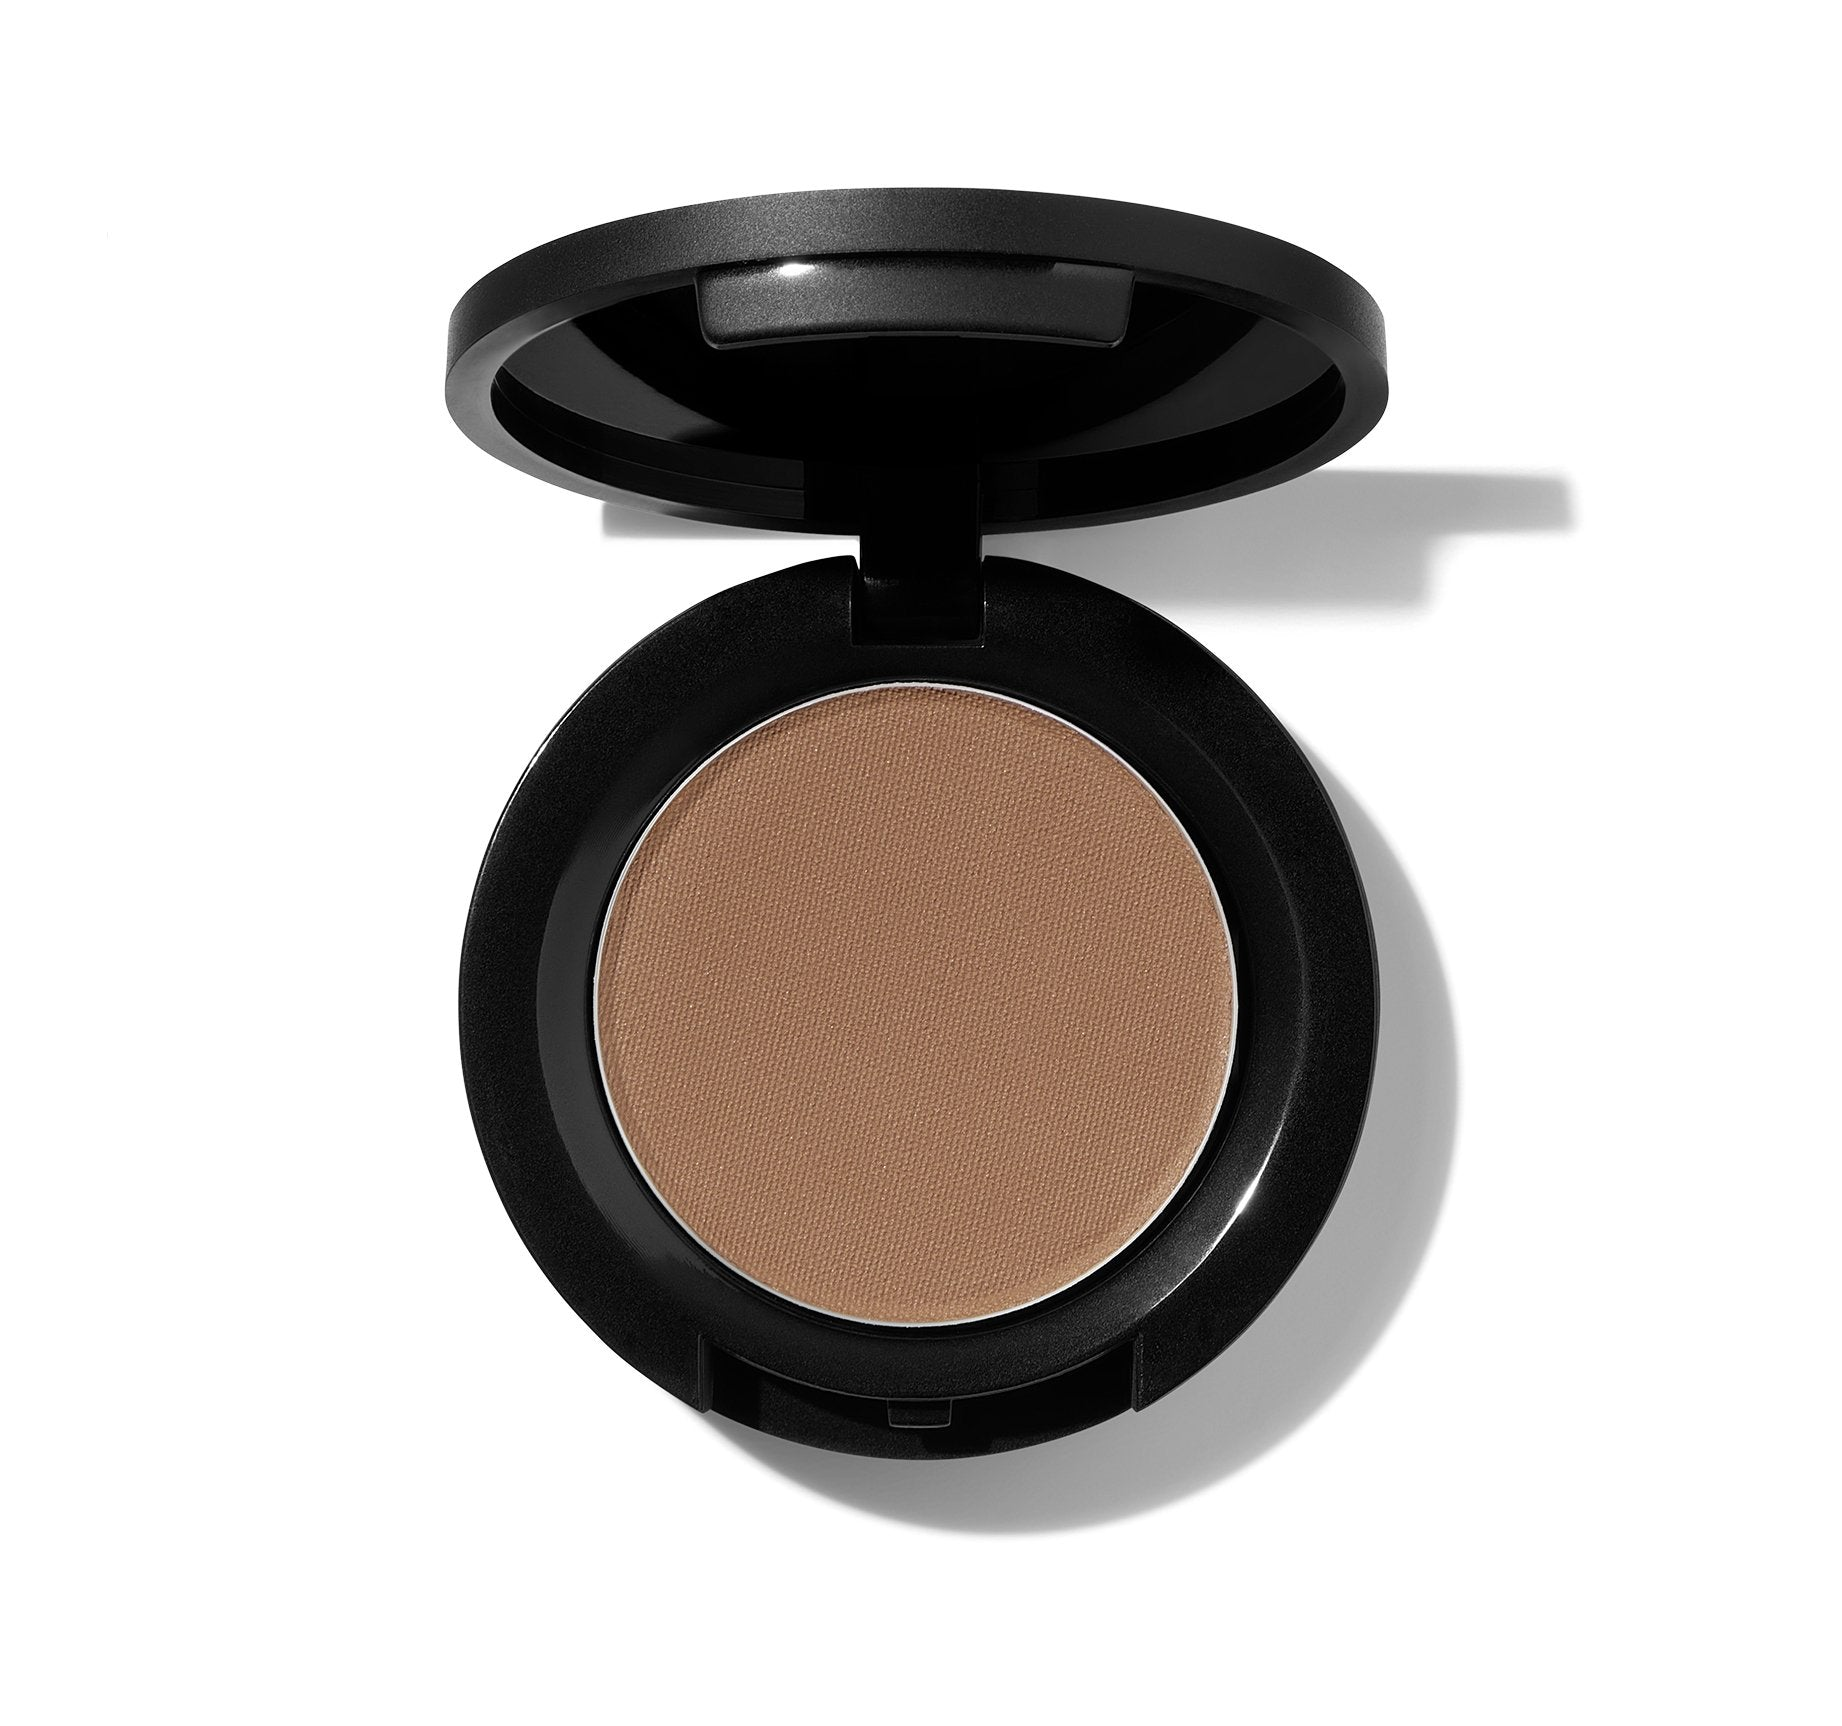 BROW POWDER - PRALINE, view larger image